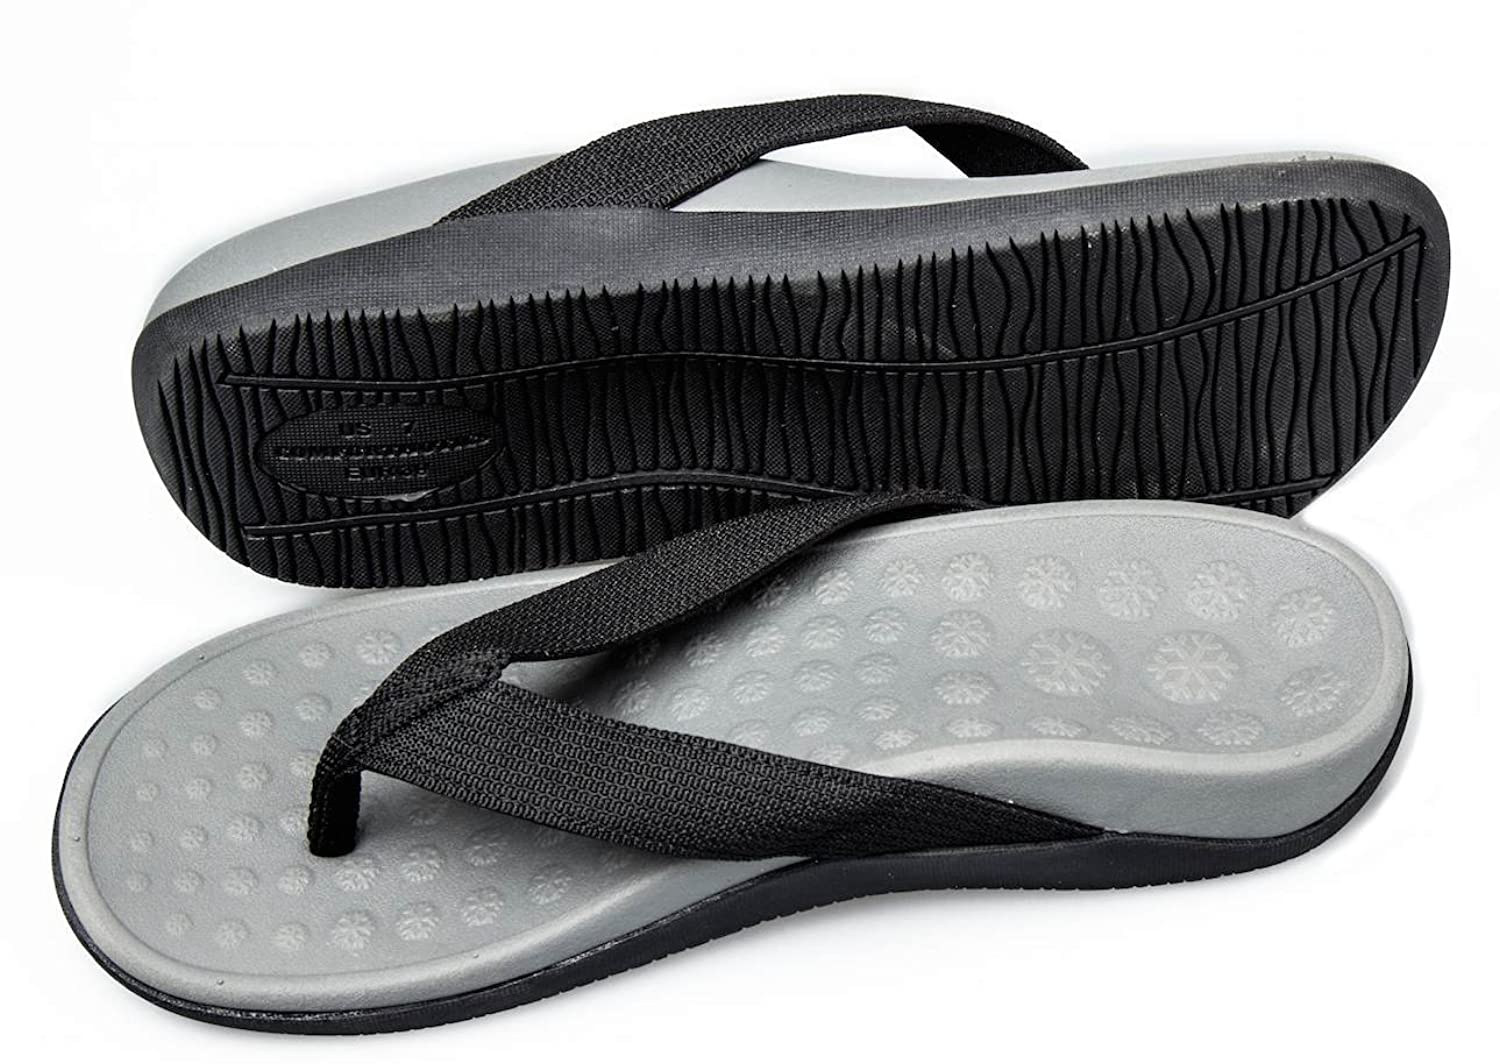 Women's sandals good for plantar fasciitis uk - Bodytec Wellbeing Orthotic Sandals With Great Arch Support And Plantar Fascitits Relief